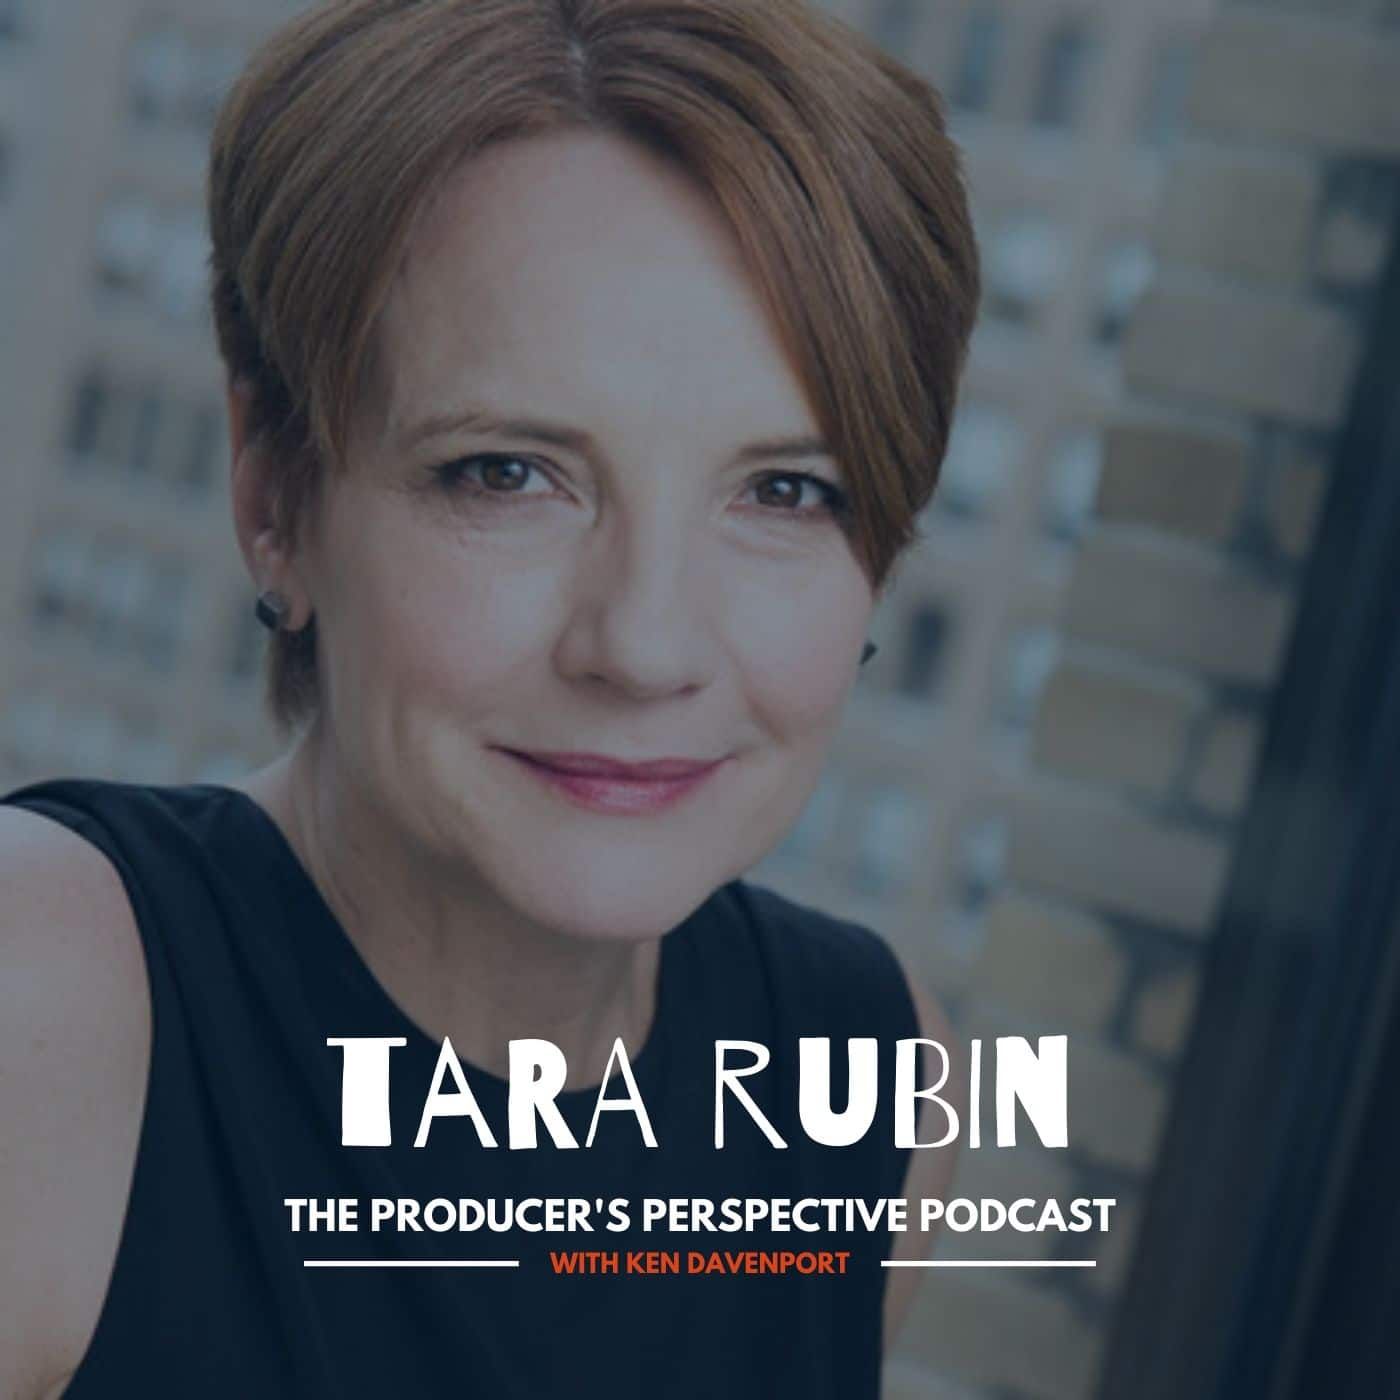 Ken Davenport's The Producer's Perspective Podcast Episode 89 - Tara Rubin